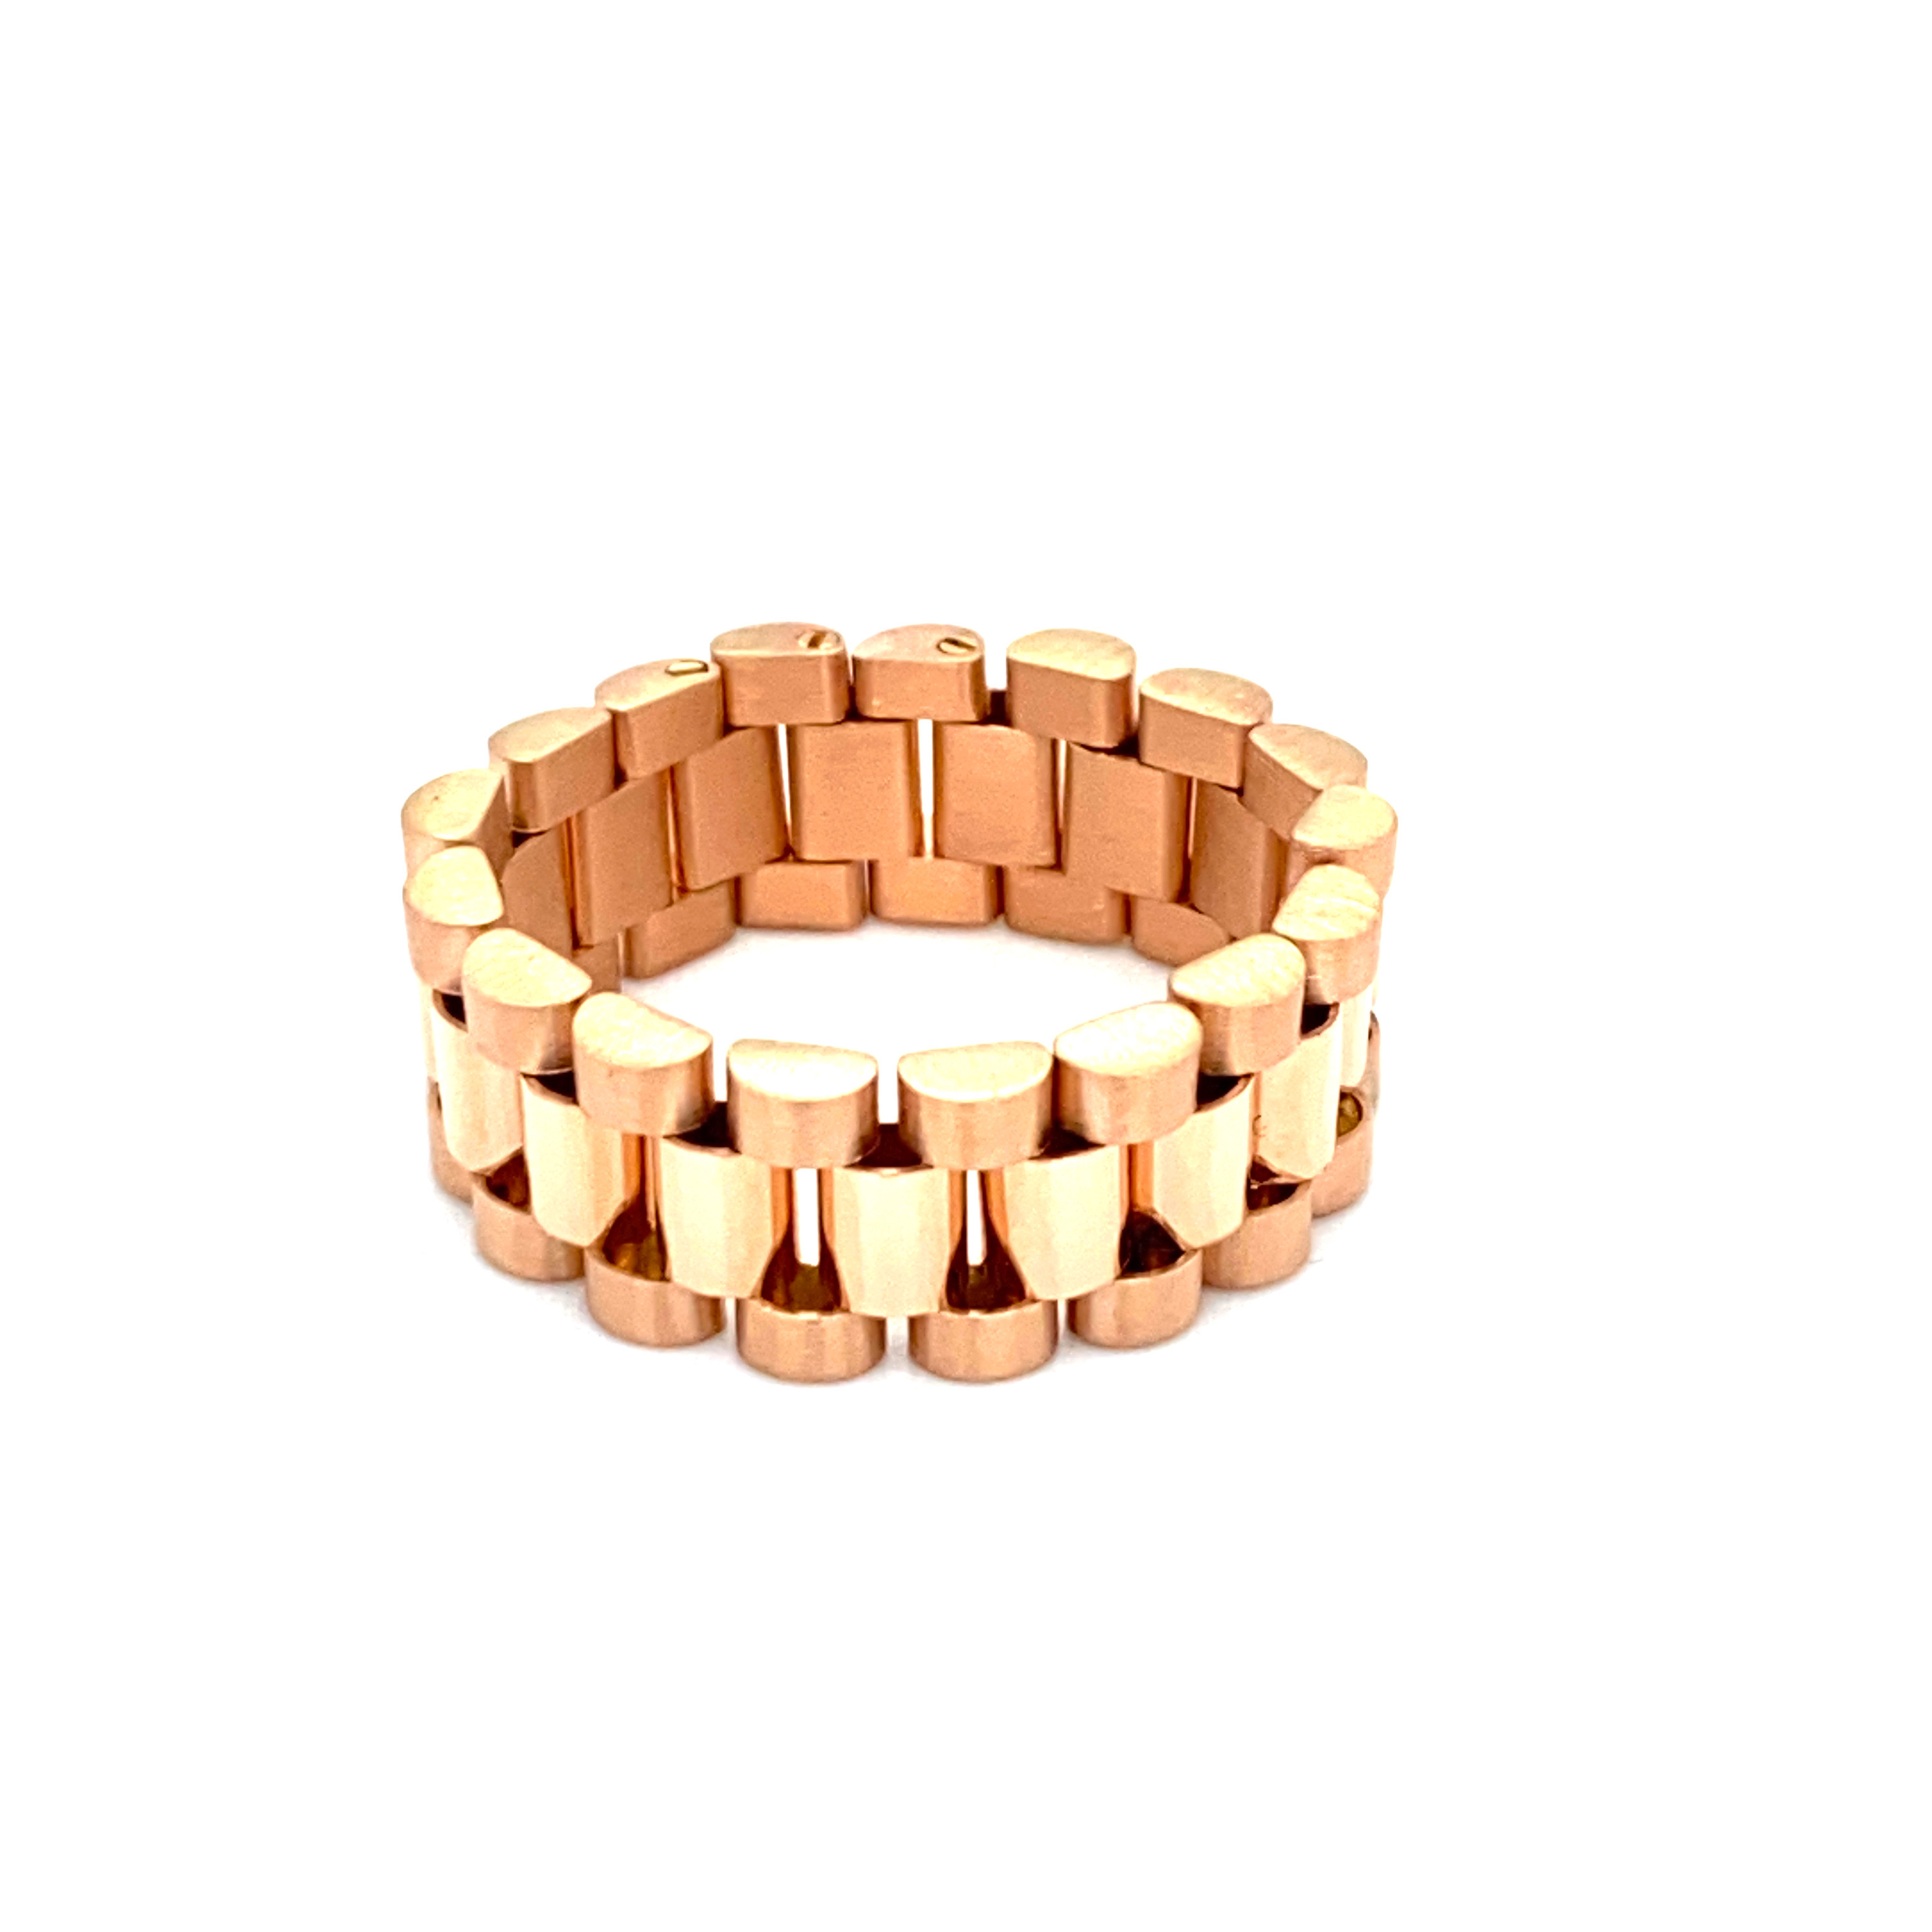 Roségold - Unisex Ring- starting from 990,- €